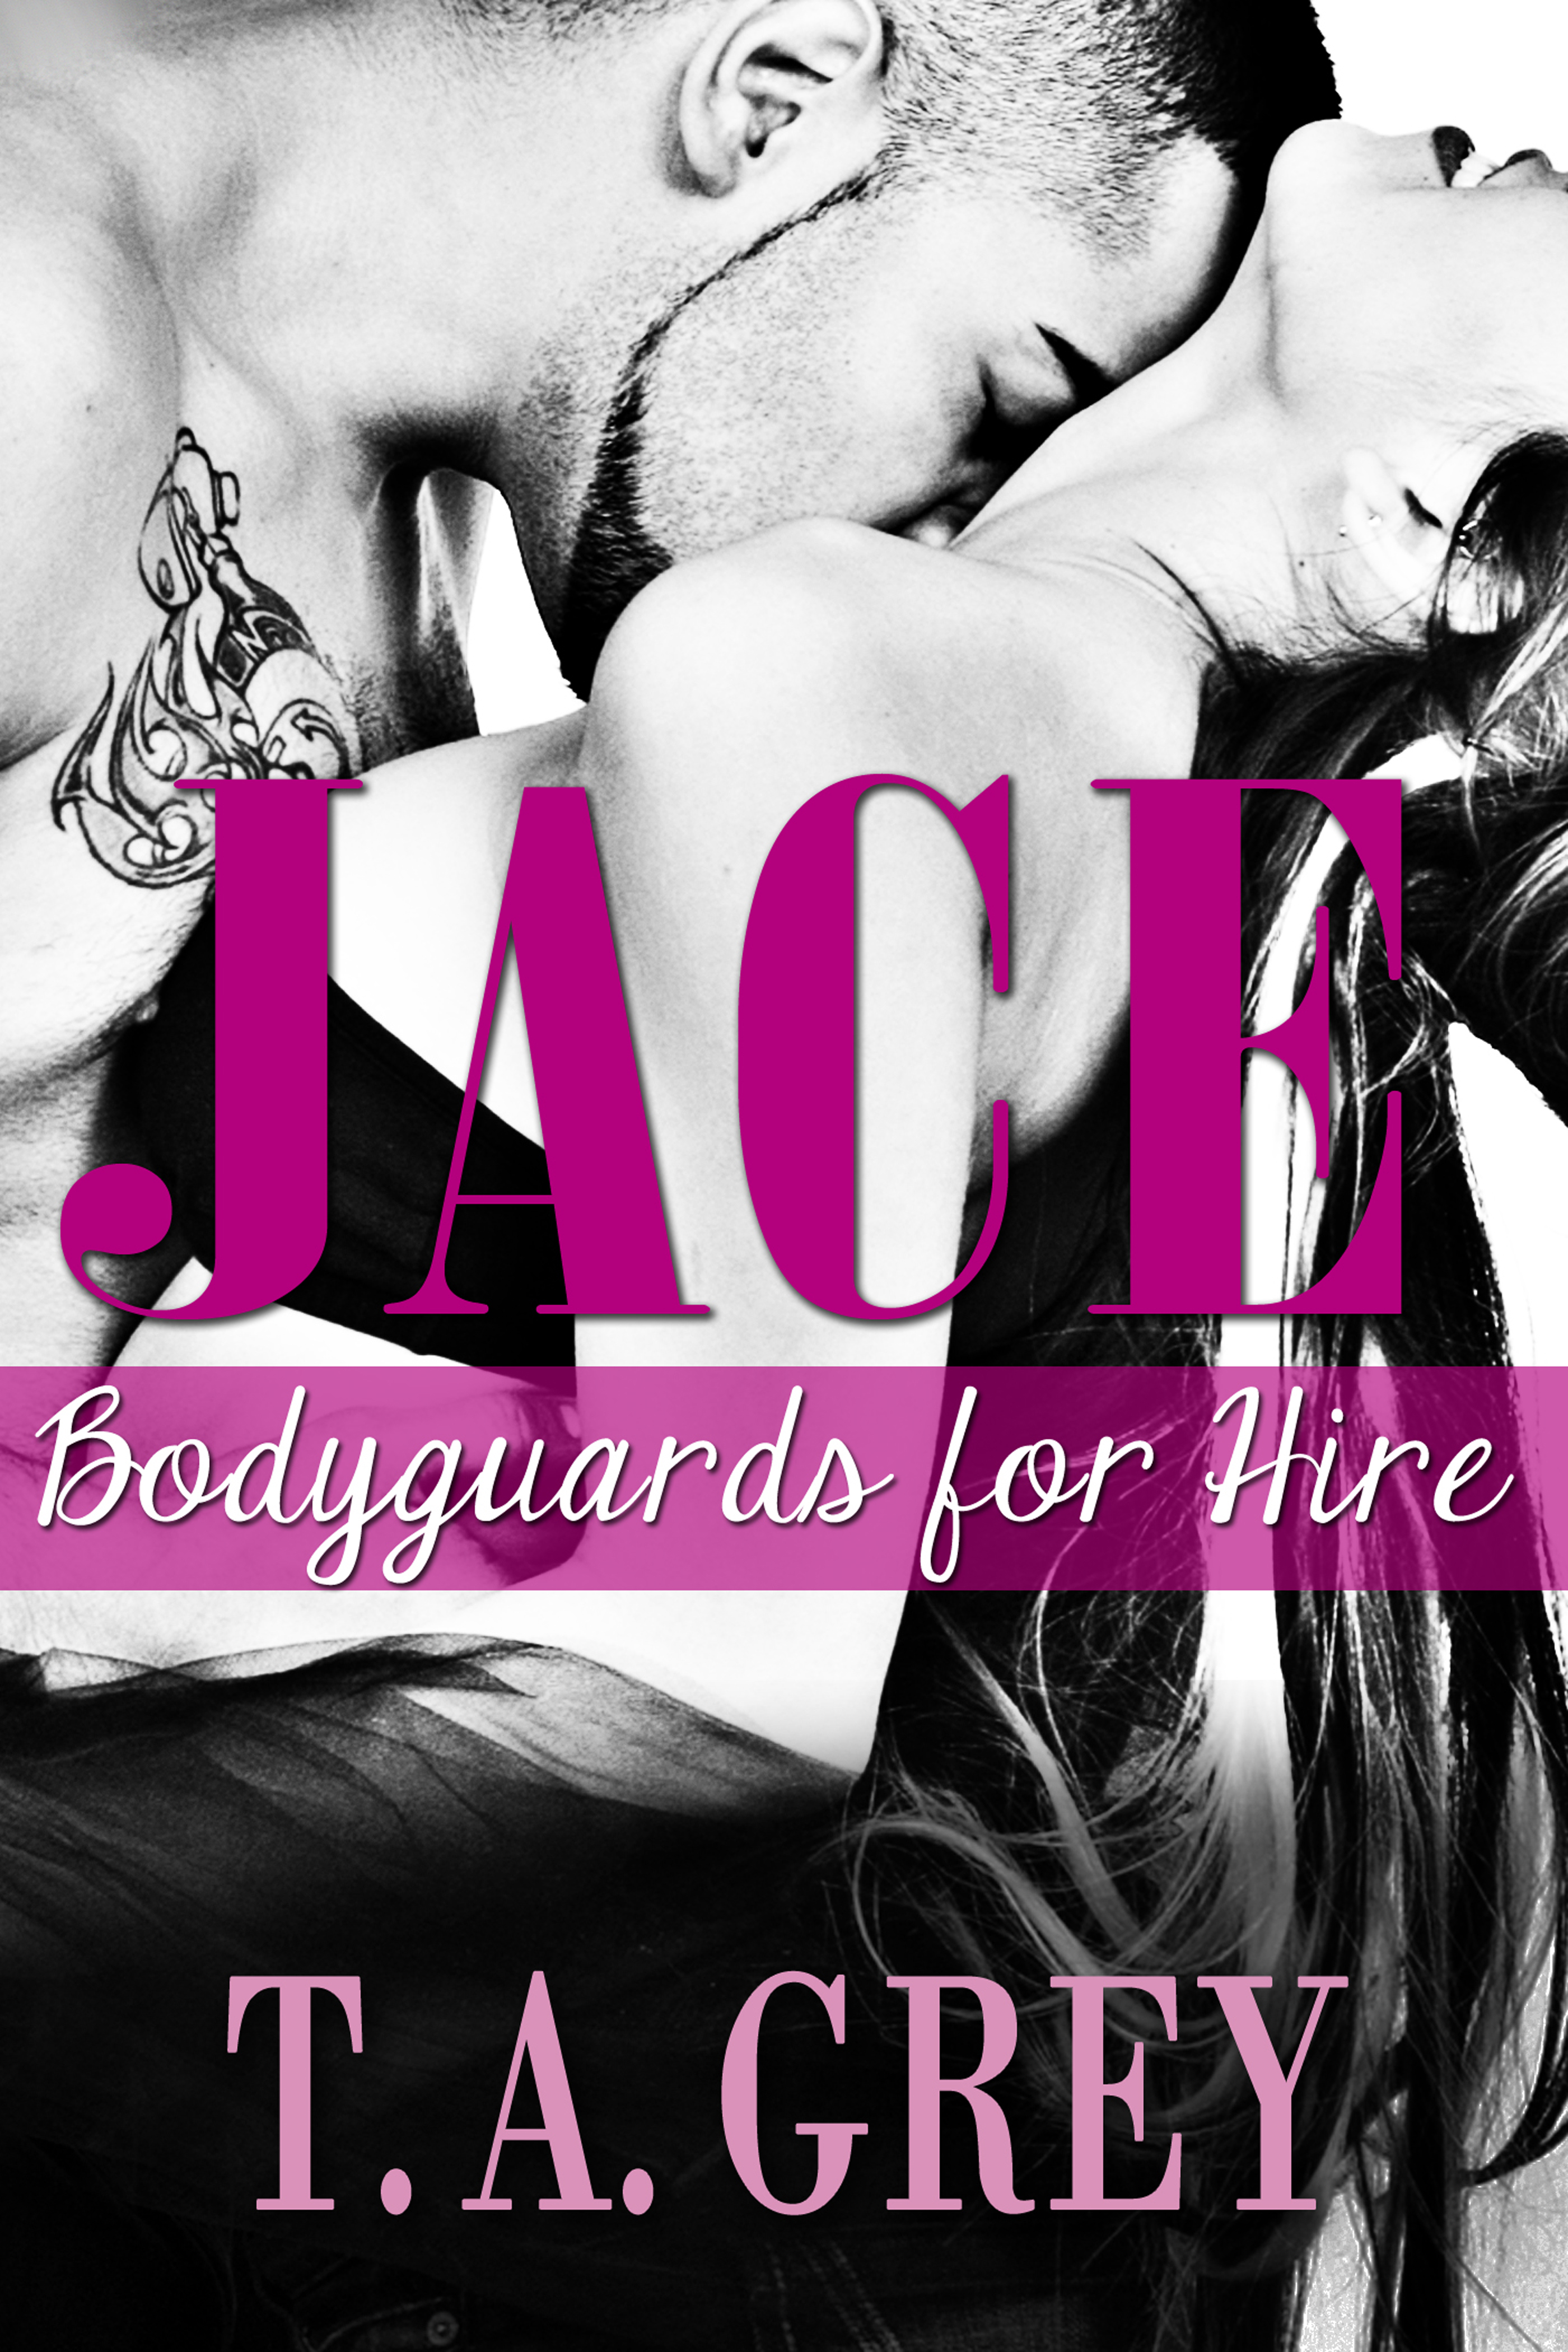 T. A. Grey - Jace (Bodyguards for Hire)